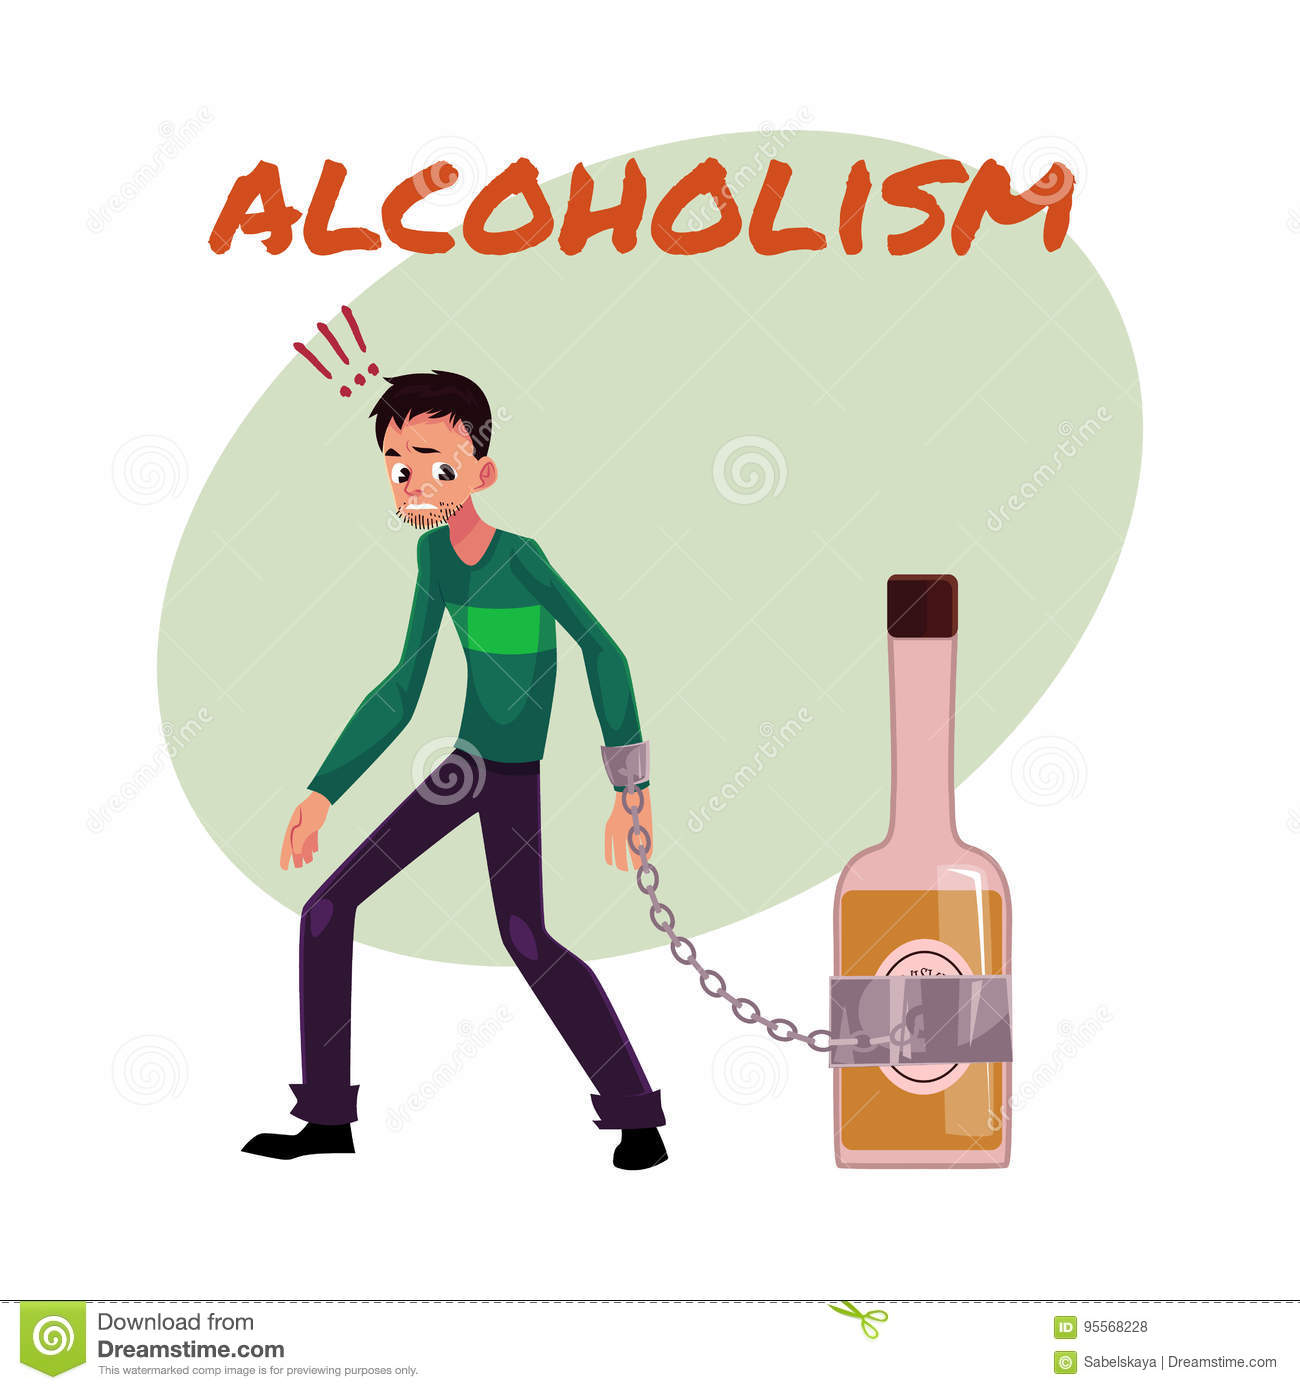 alcohol dependence Read the latest articles of drug and alcohol dependence at sciencedirectcom, elsevier's leading platform of peer-reviewed scholarly literature.